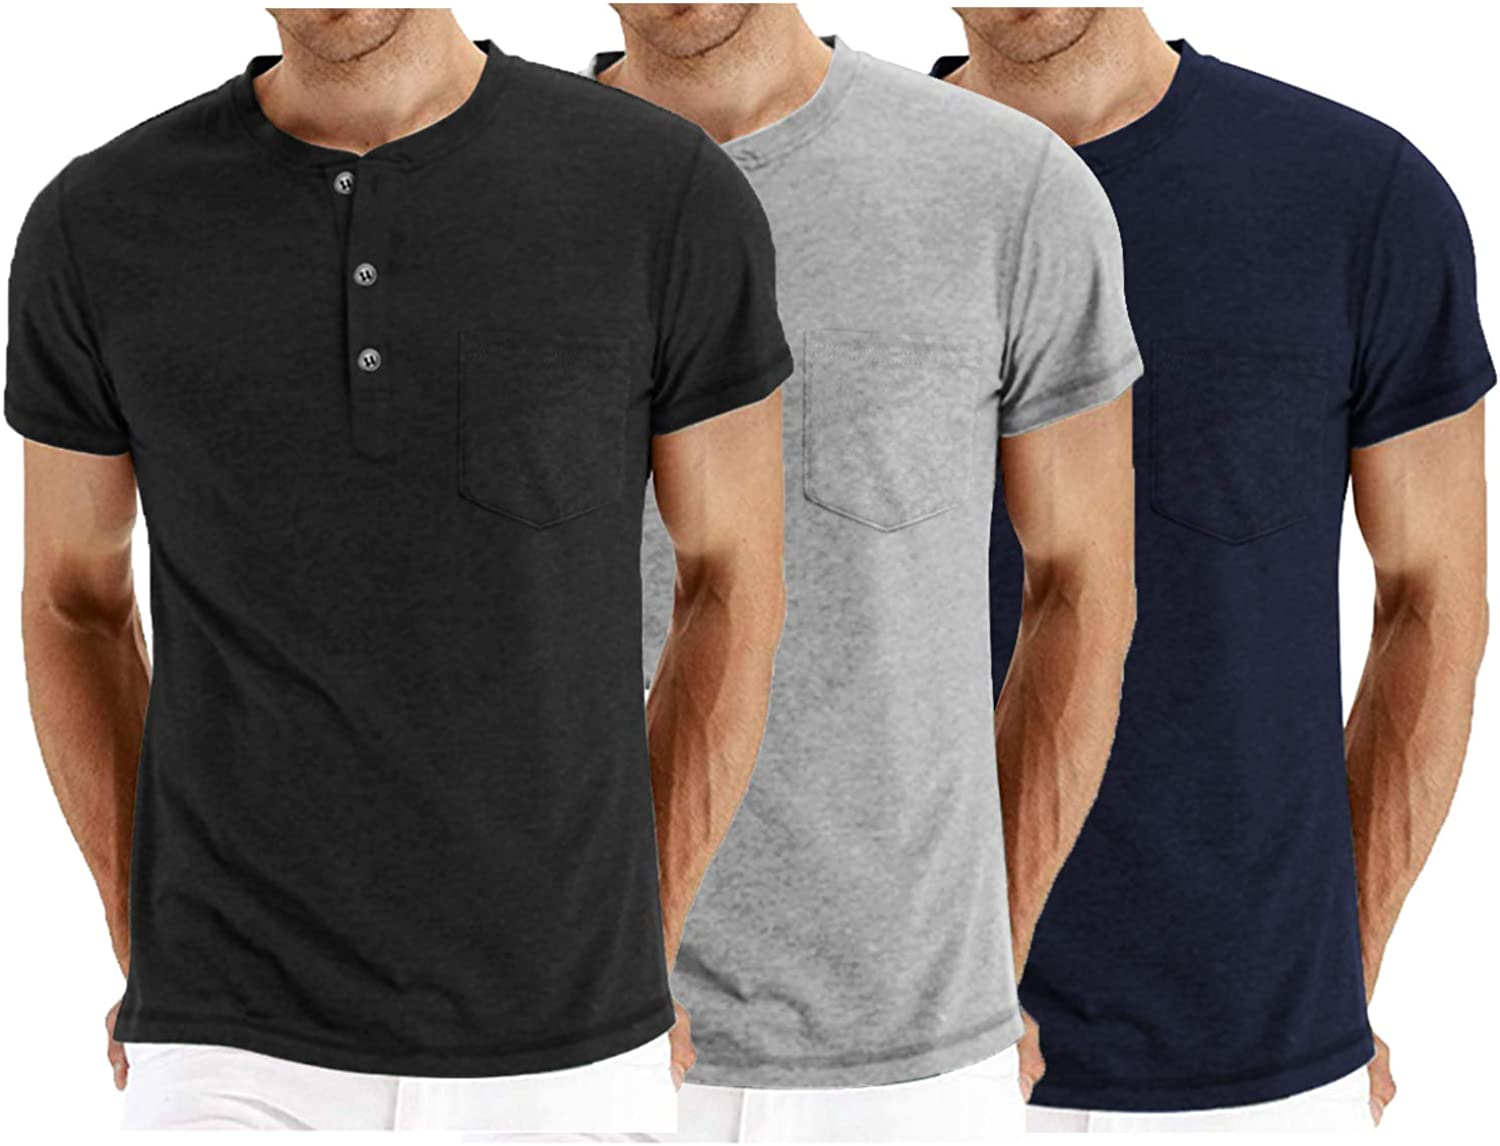 COOFANDY Mens 3Pack Henley Shirts Short Sleeve Casual Basic Summer Solid T Shirts with Pocket